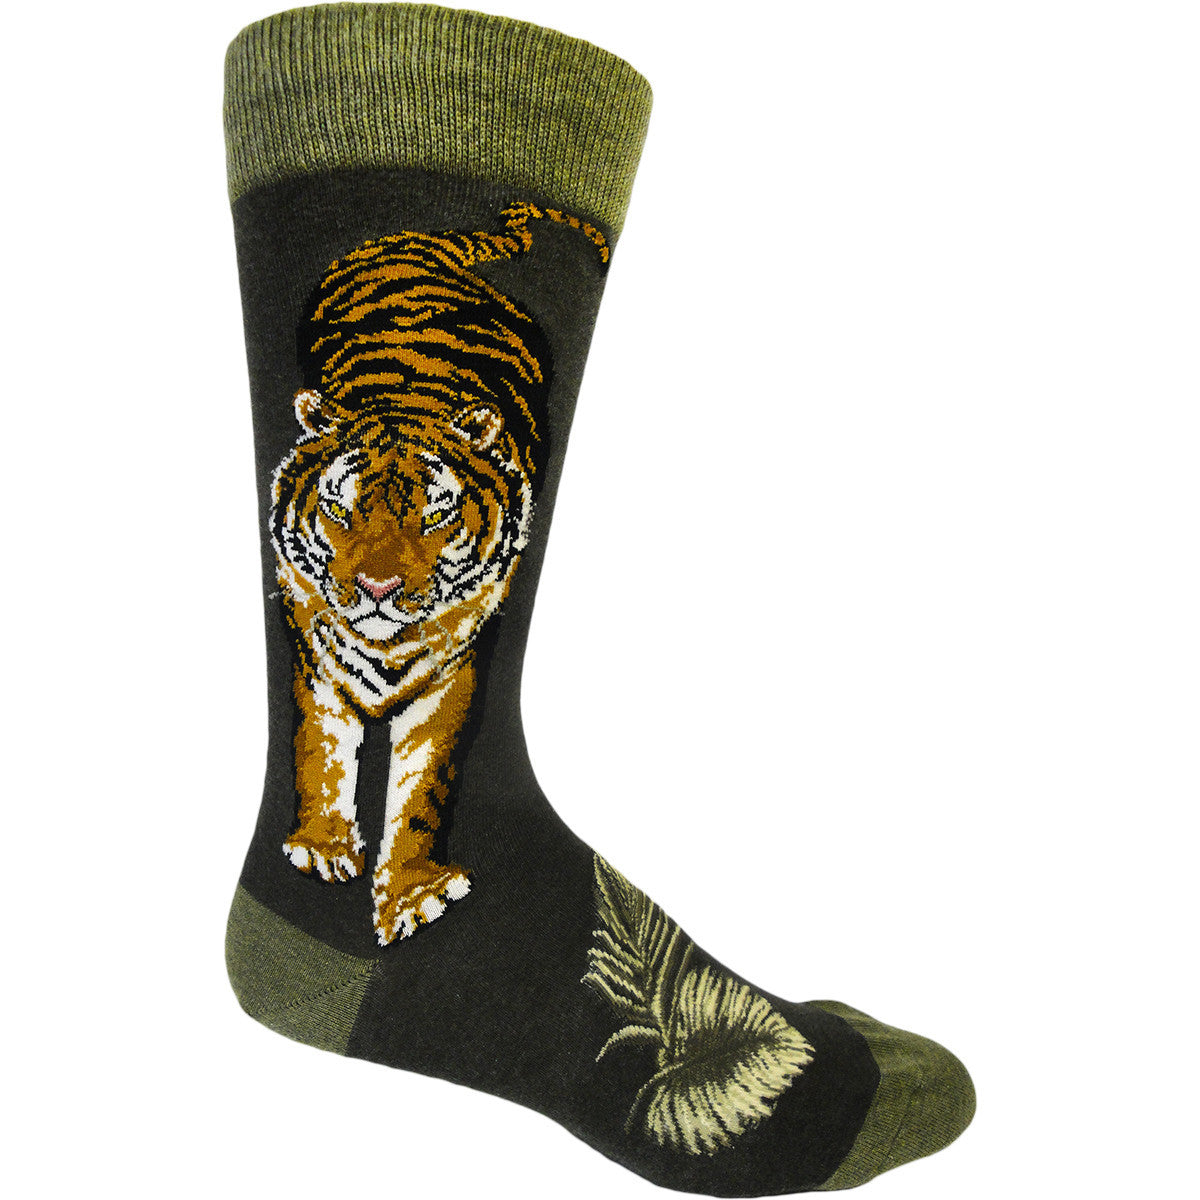 Men's Fierce Tiger Crew